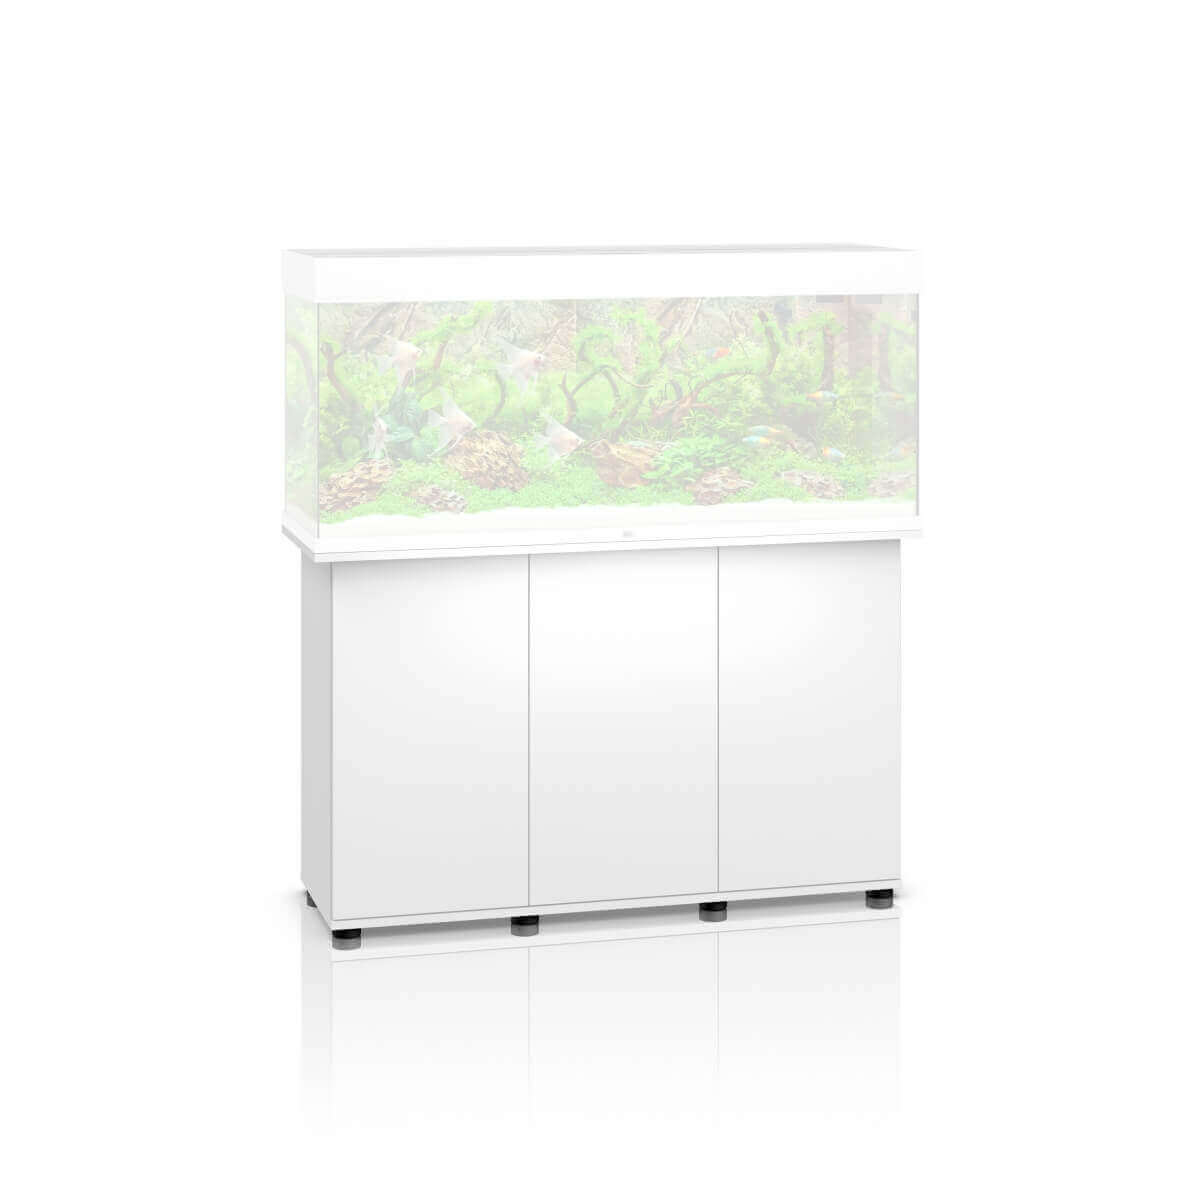 Rio Aquarium Cabinet - Brown_7